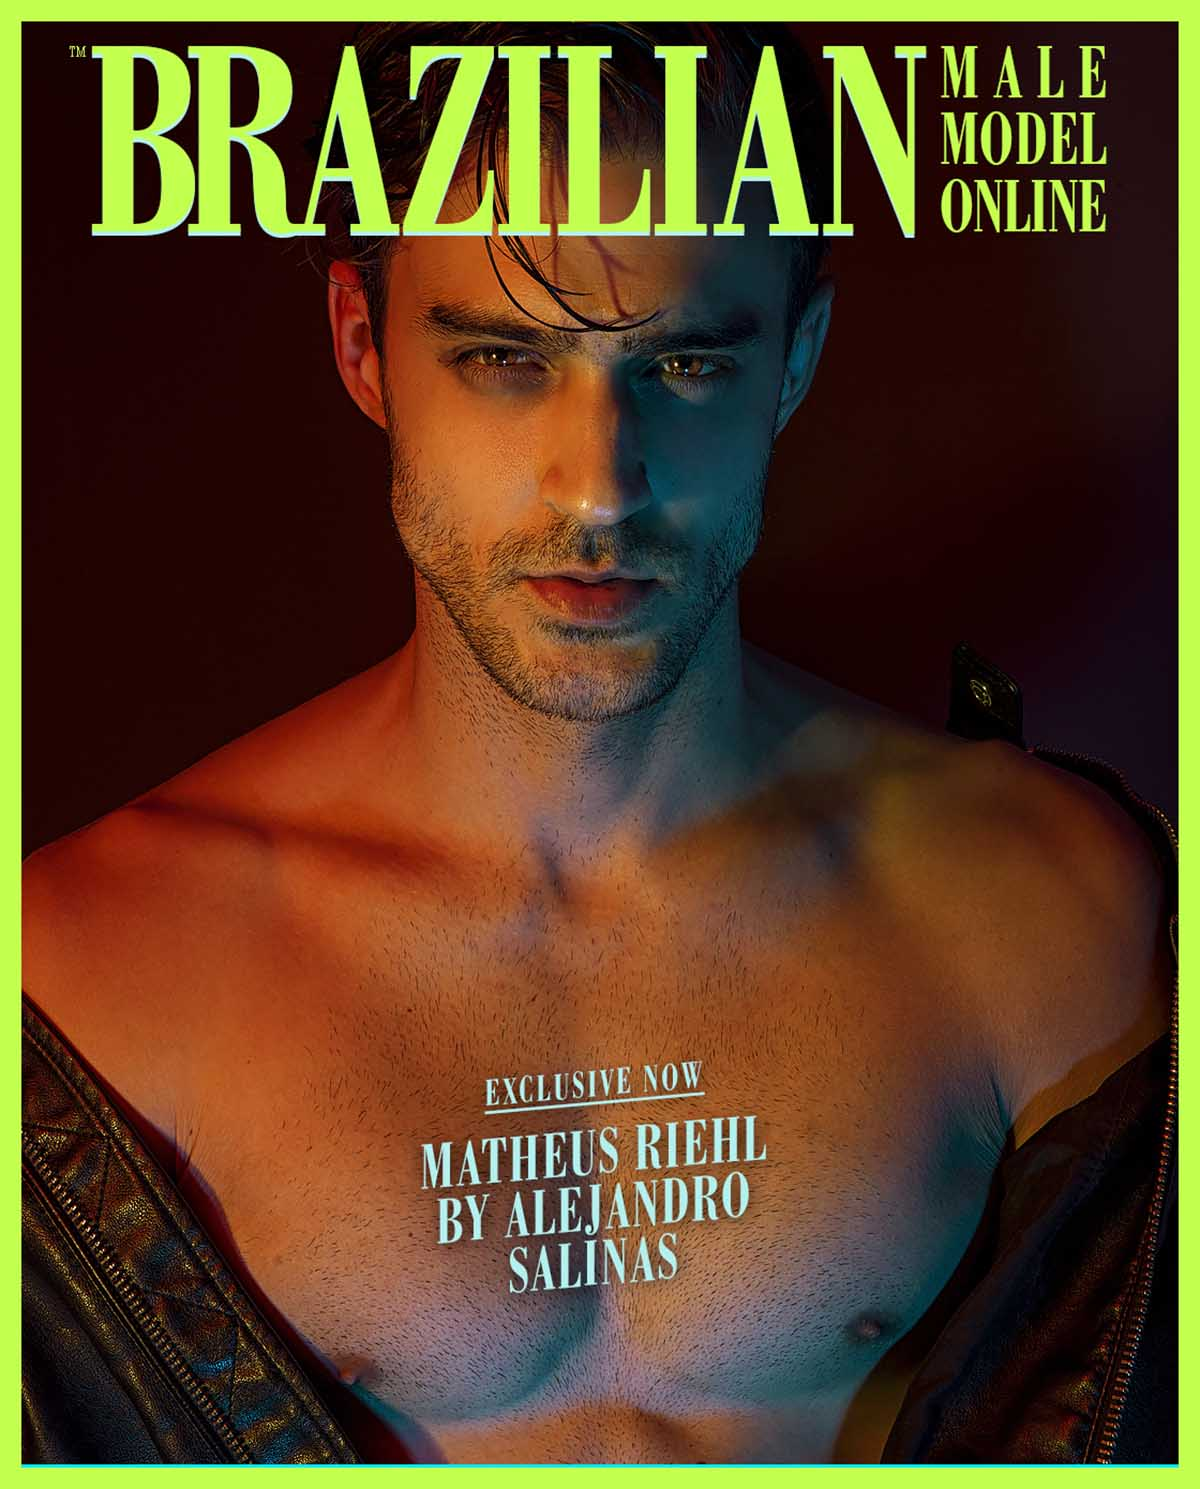 Matheus Riehl by Alejandro Salinas for Brazilian Male Model X YUP MAGAZINE